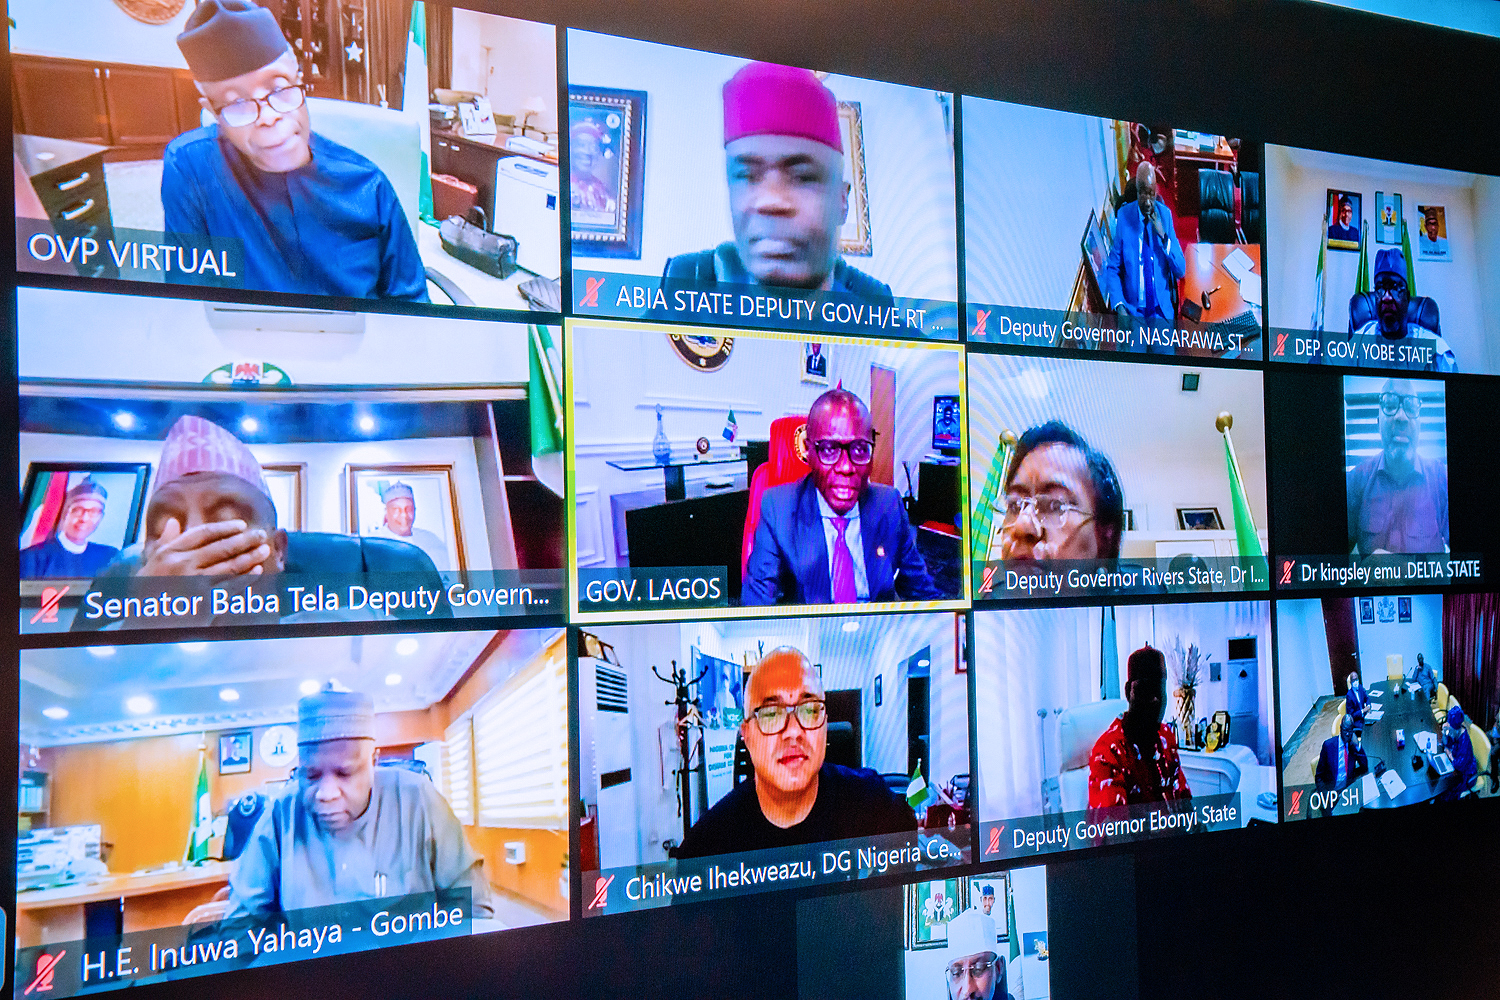 VP Osinbajo Presides Over Virtual Meeting Of The National Economic Council On 26/08/2021